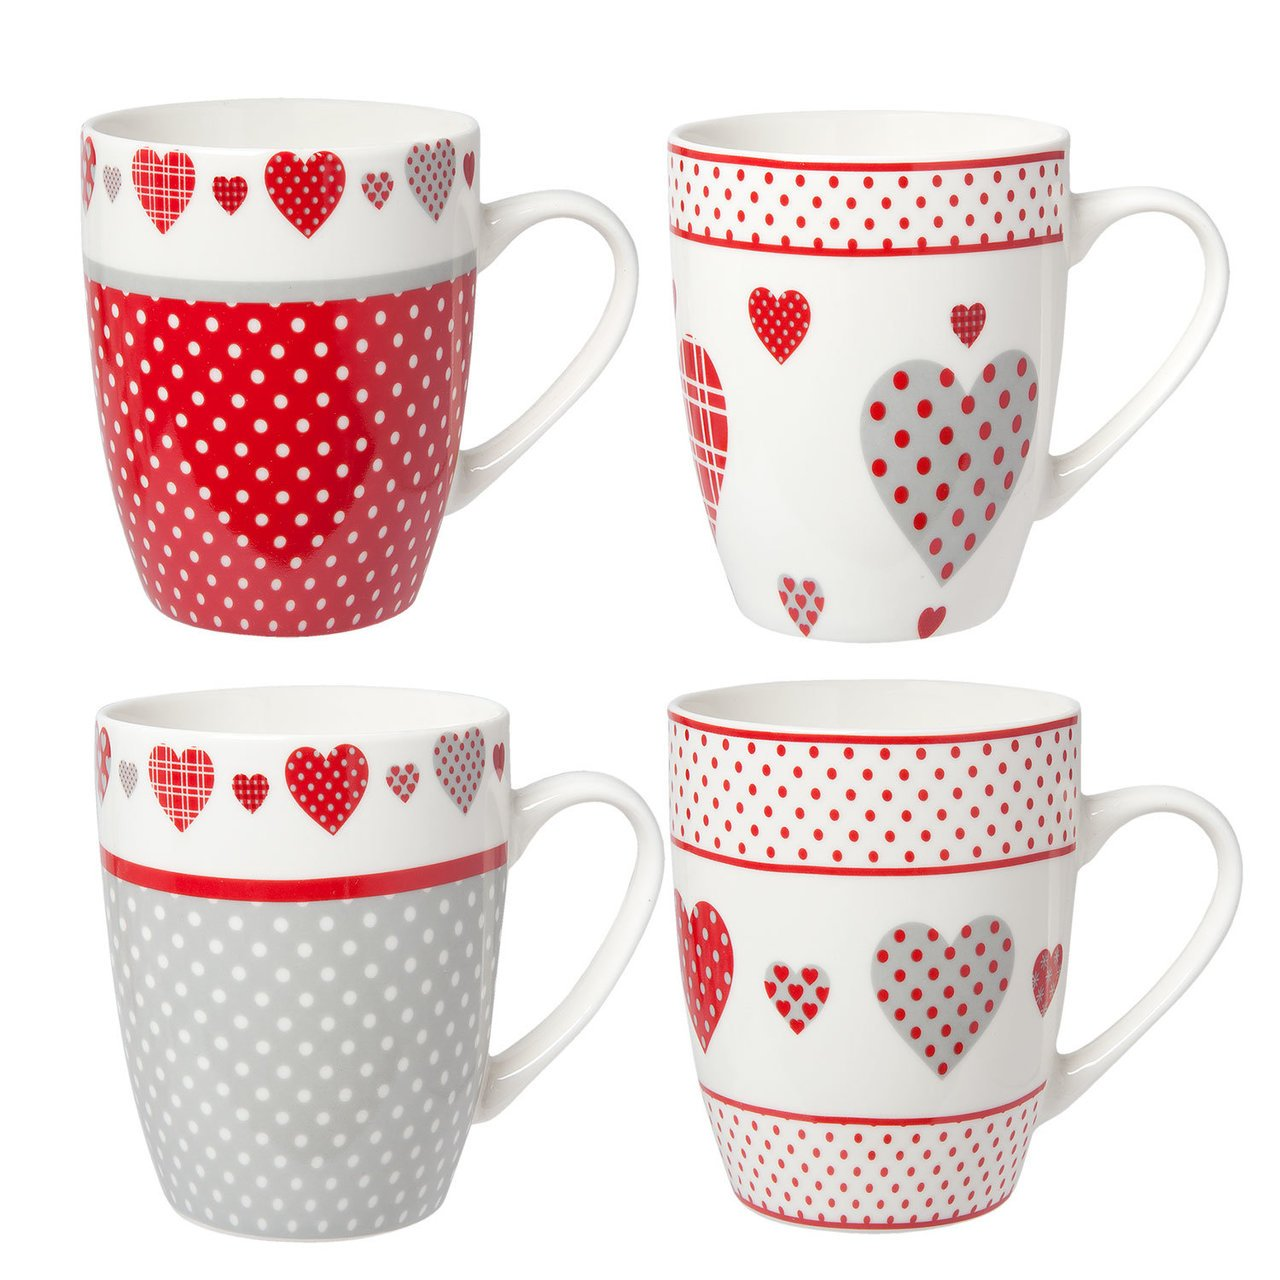 Clayre & Eef 4 teiliges Becher Set Hearts